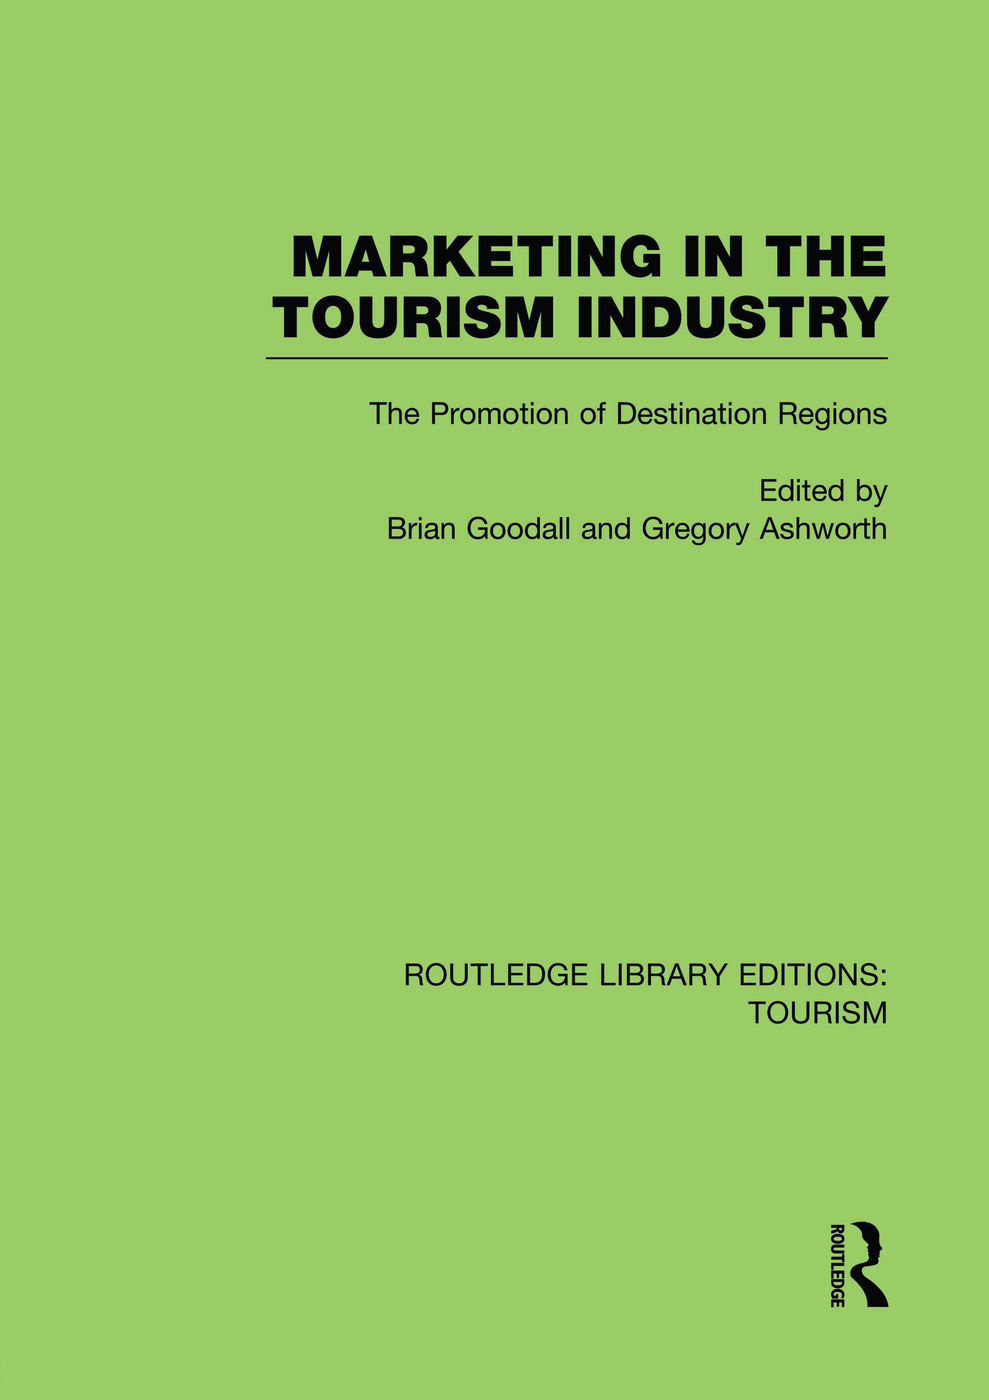 Marketing in the Tourism Industry (RLE Tourism): The Promotion of Destination Regions book cover